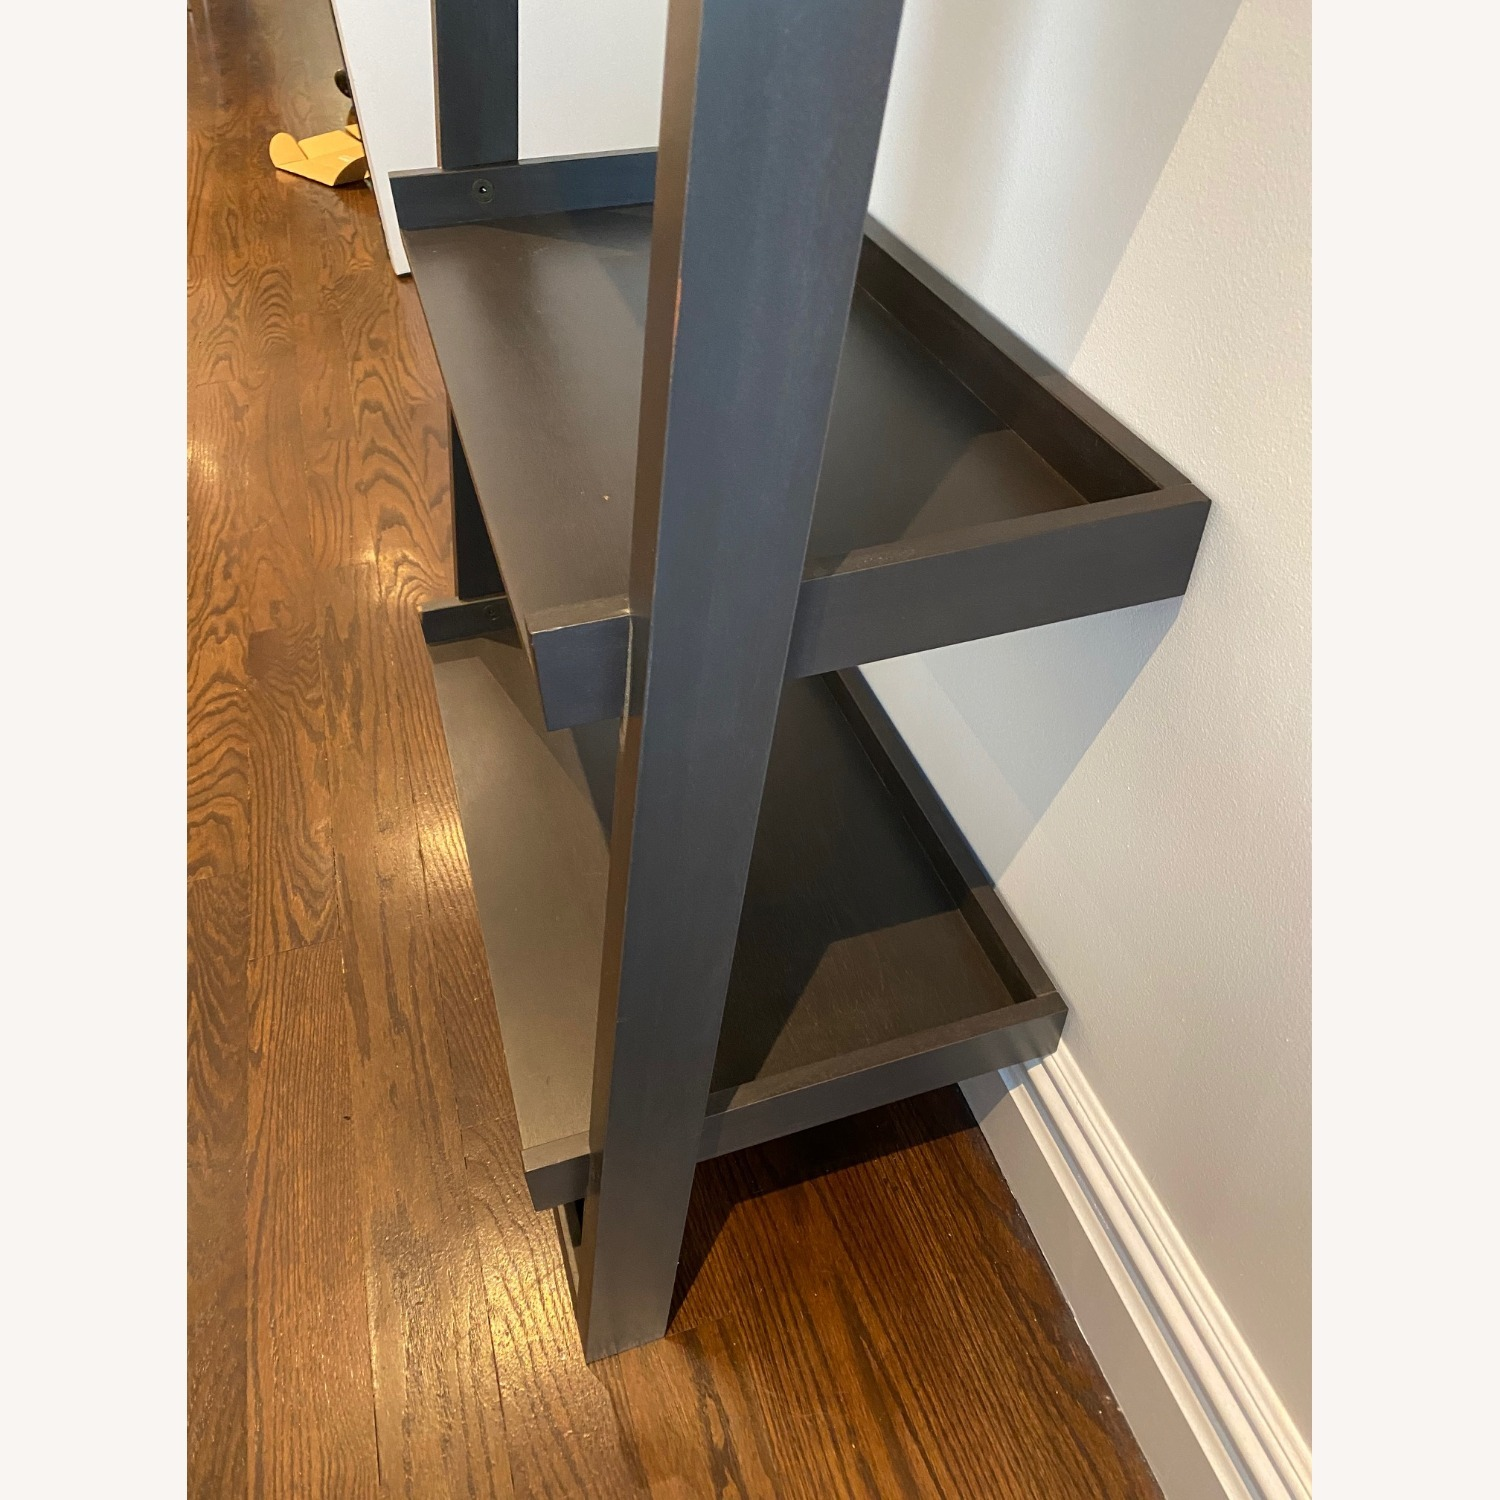 Crate and Barrel Sloane Leaning Bookcase - image-13